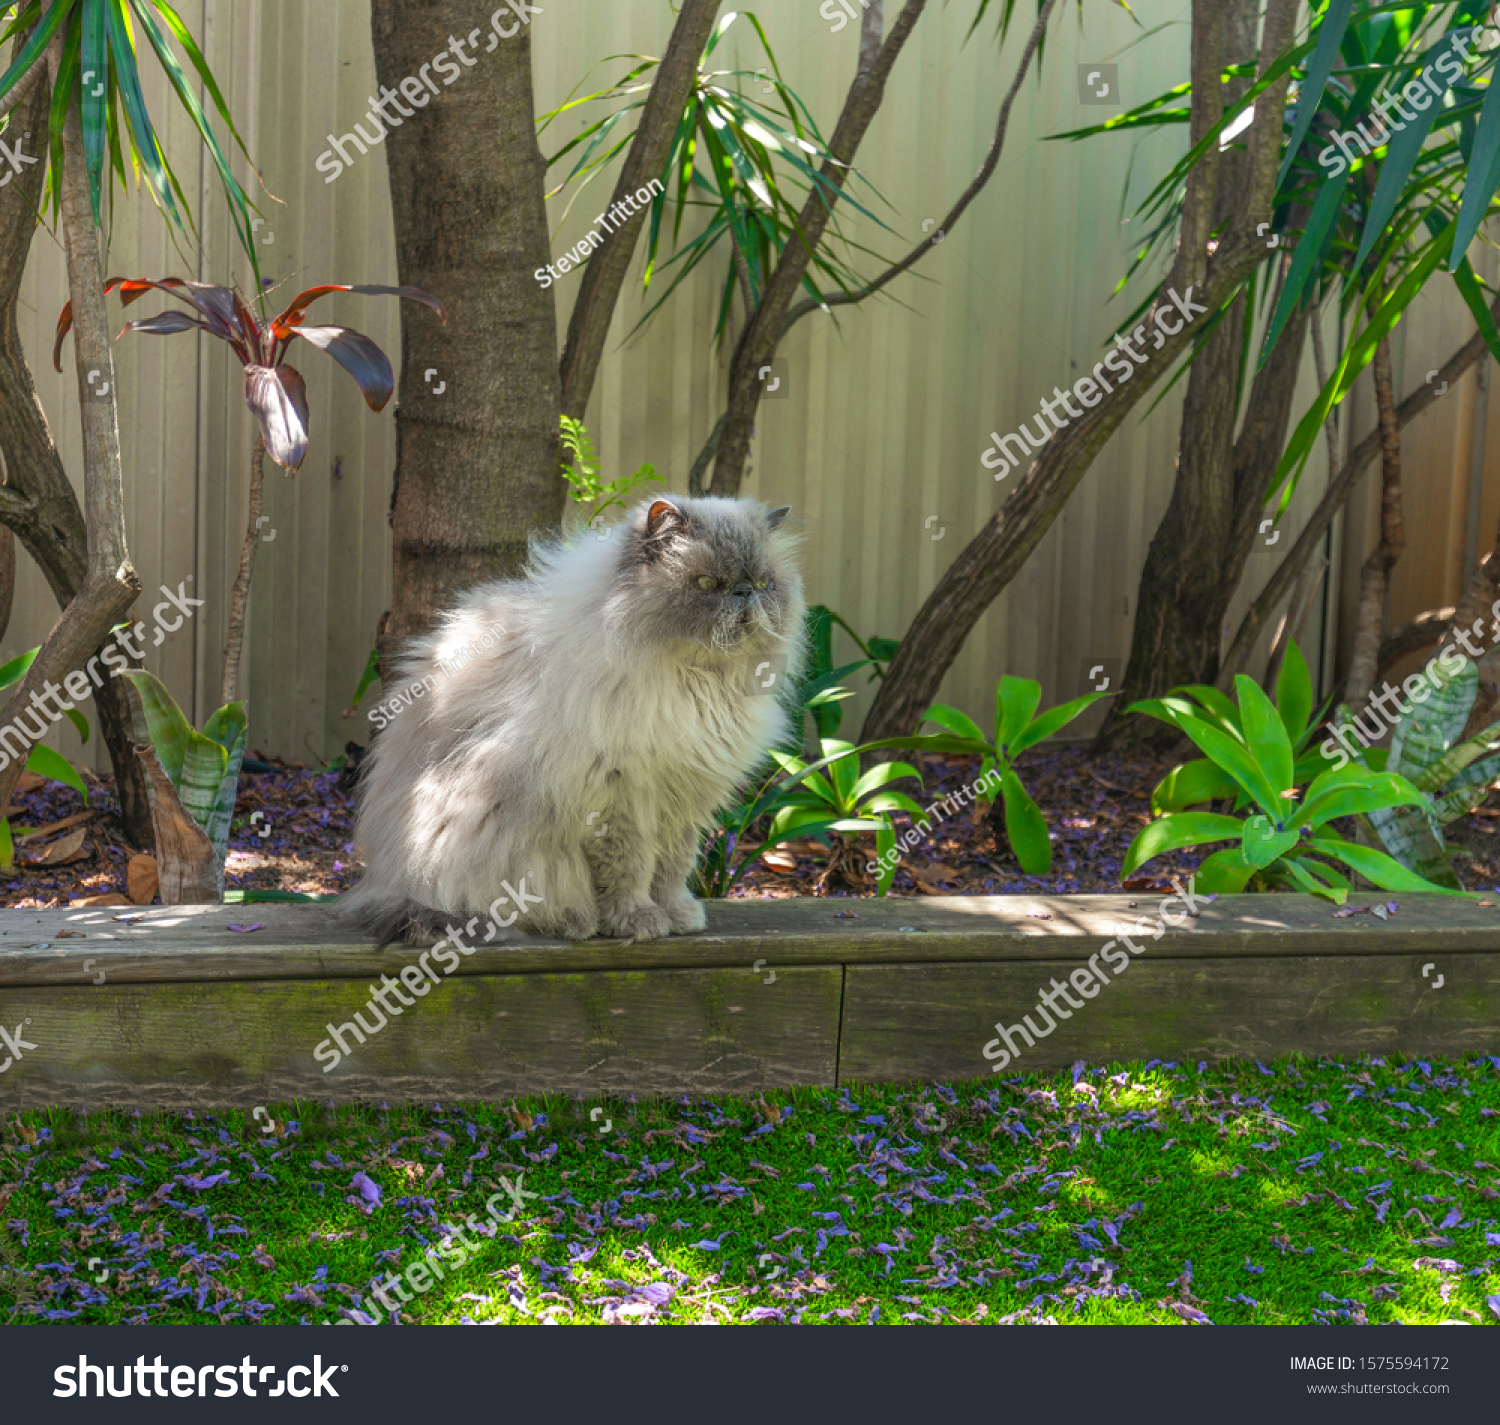 Beautiful Persian cat sitting on a low garden wood fence looking attentively